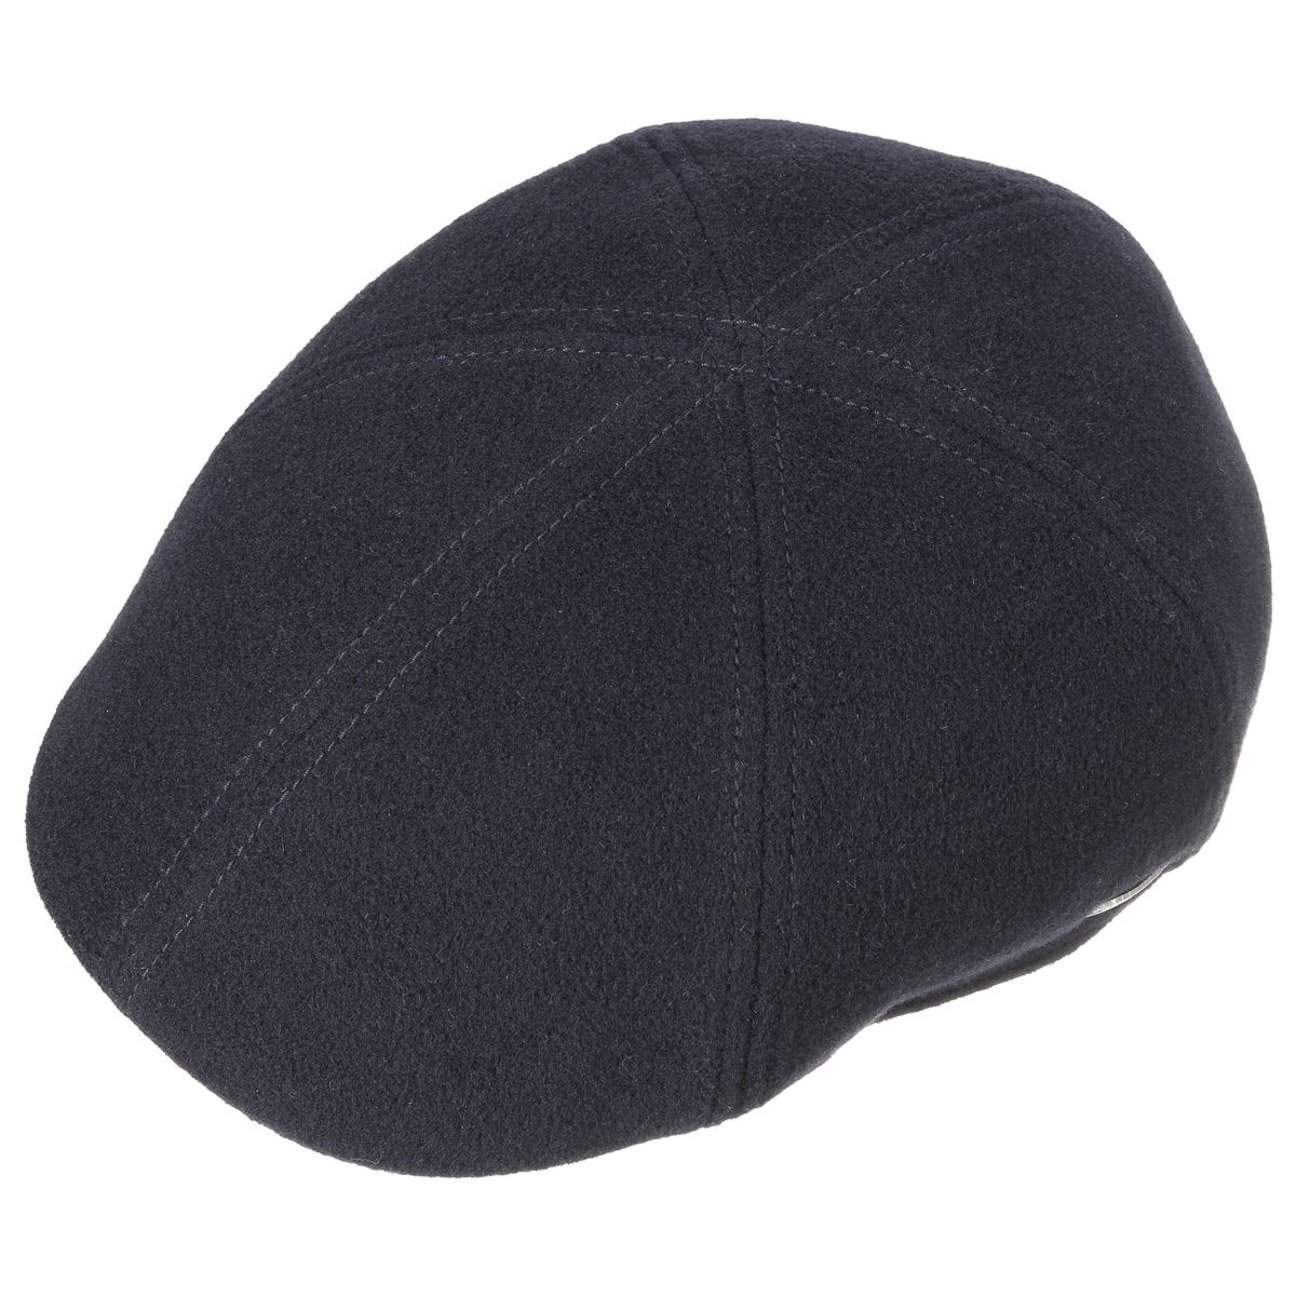 Stetson Mens Texas Wool/Cashmere Driver Cap at Amazon Mens Clothing store: